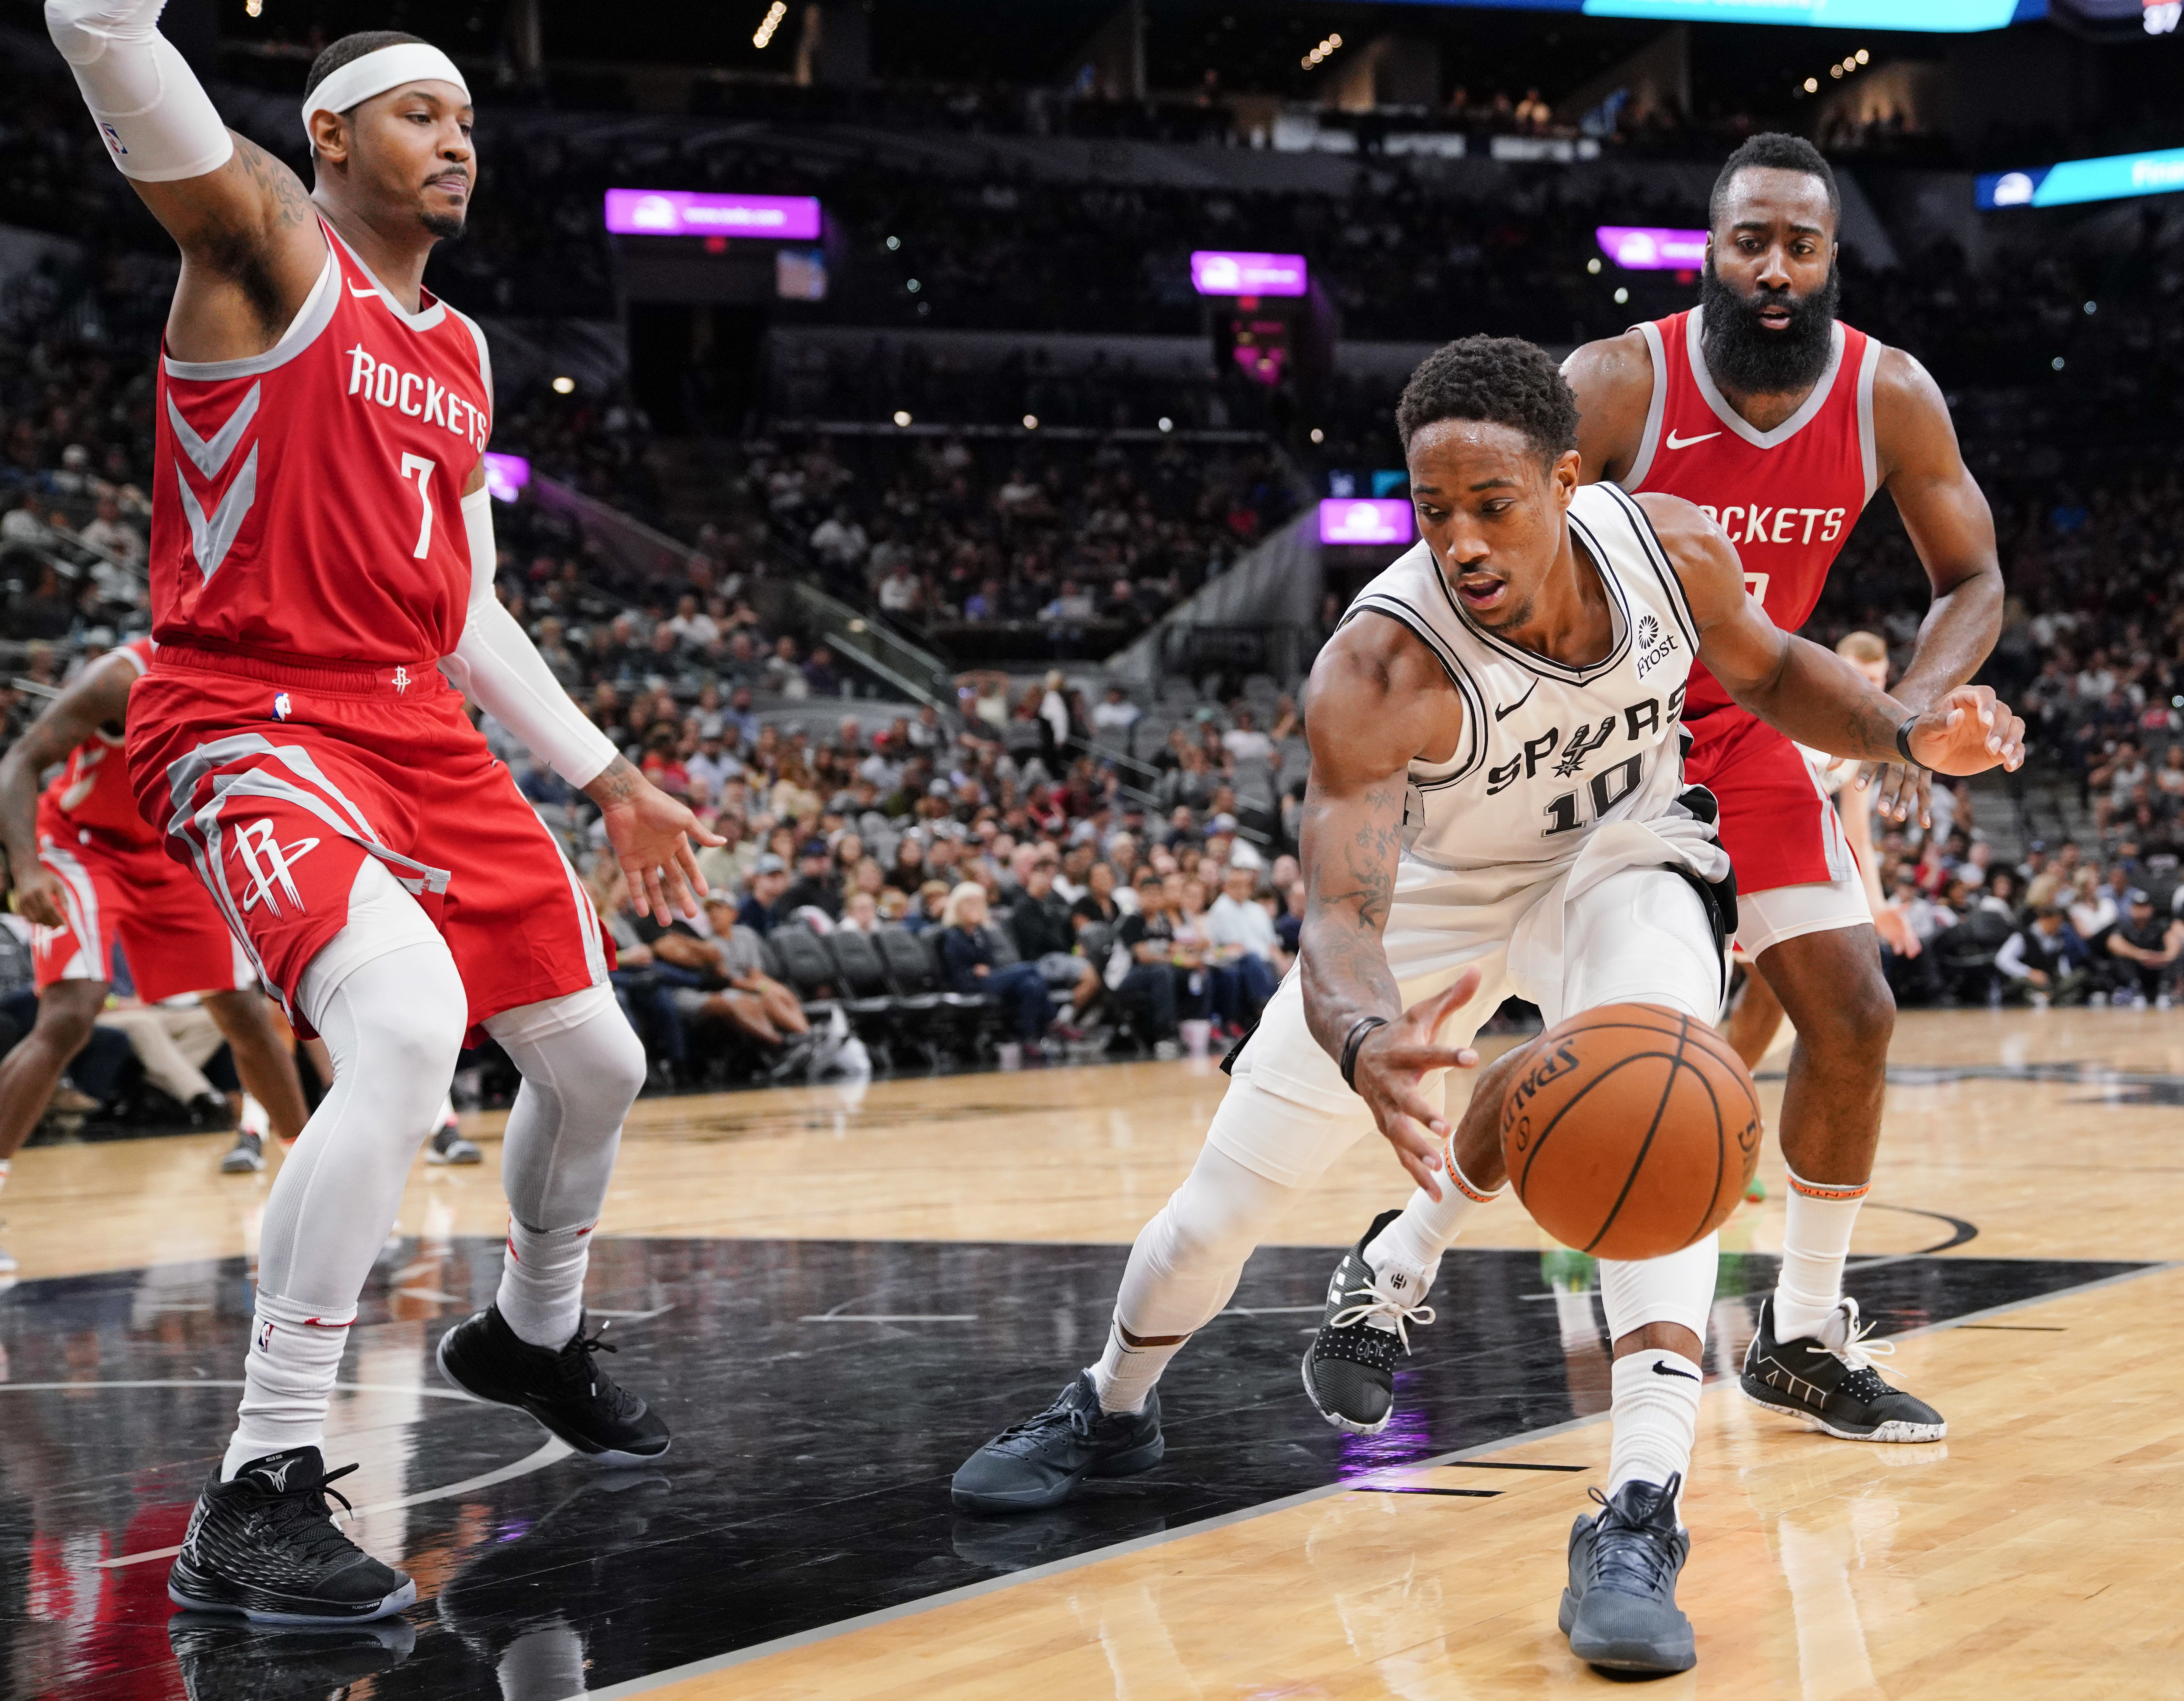 Murray's knee injury another Spurs concern as season nears